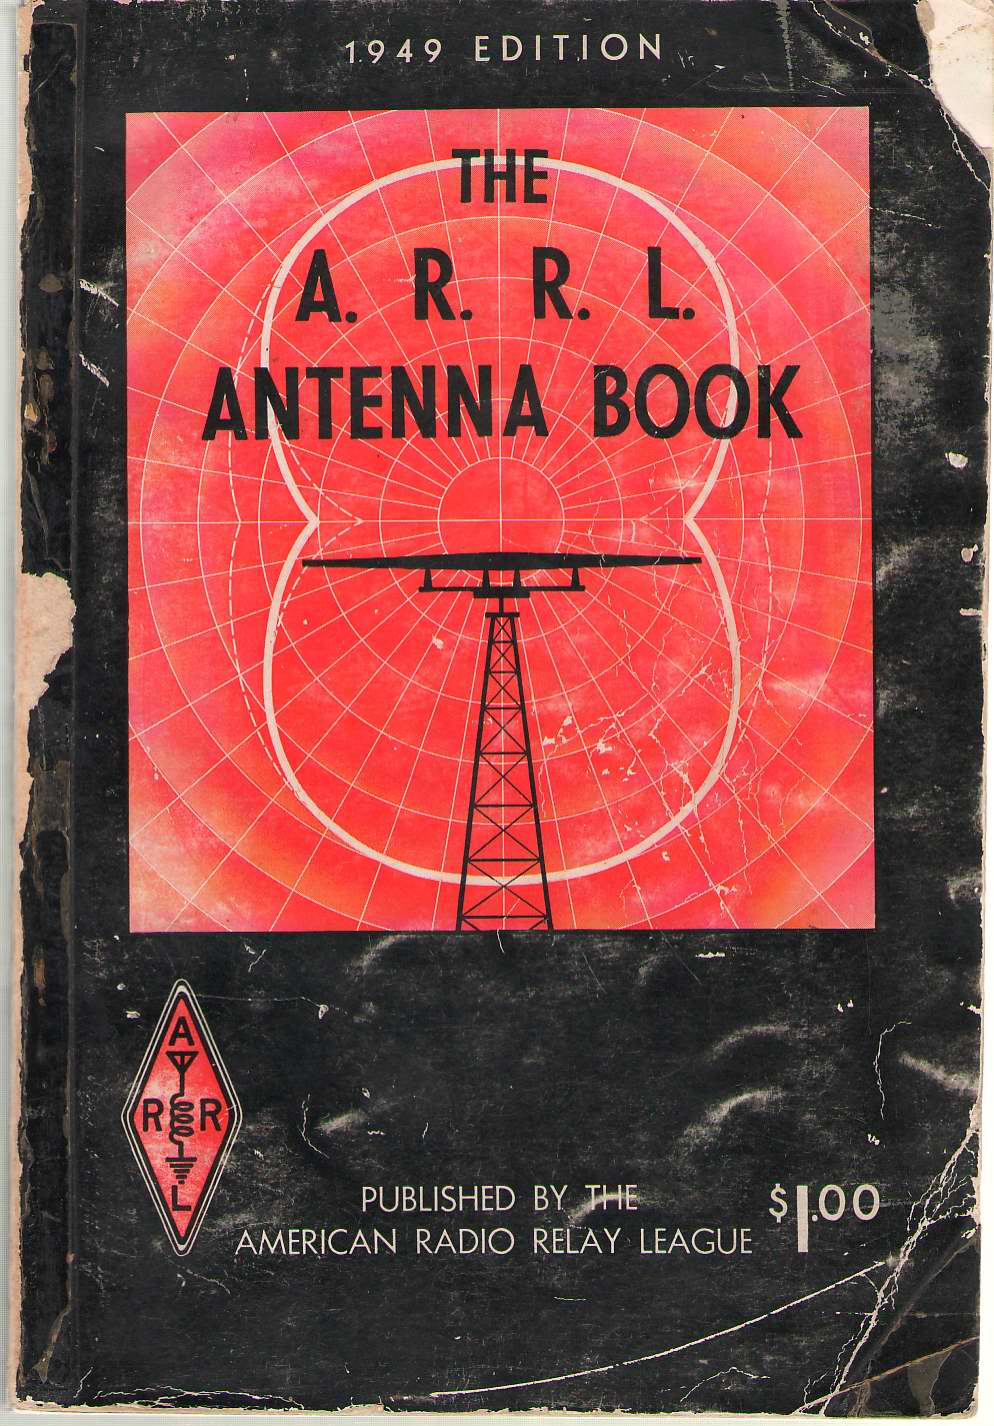 The A. R. R. L Antenna Book, American Radio Relay League